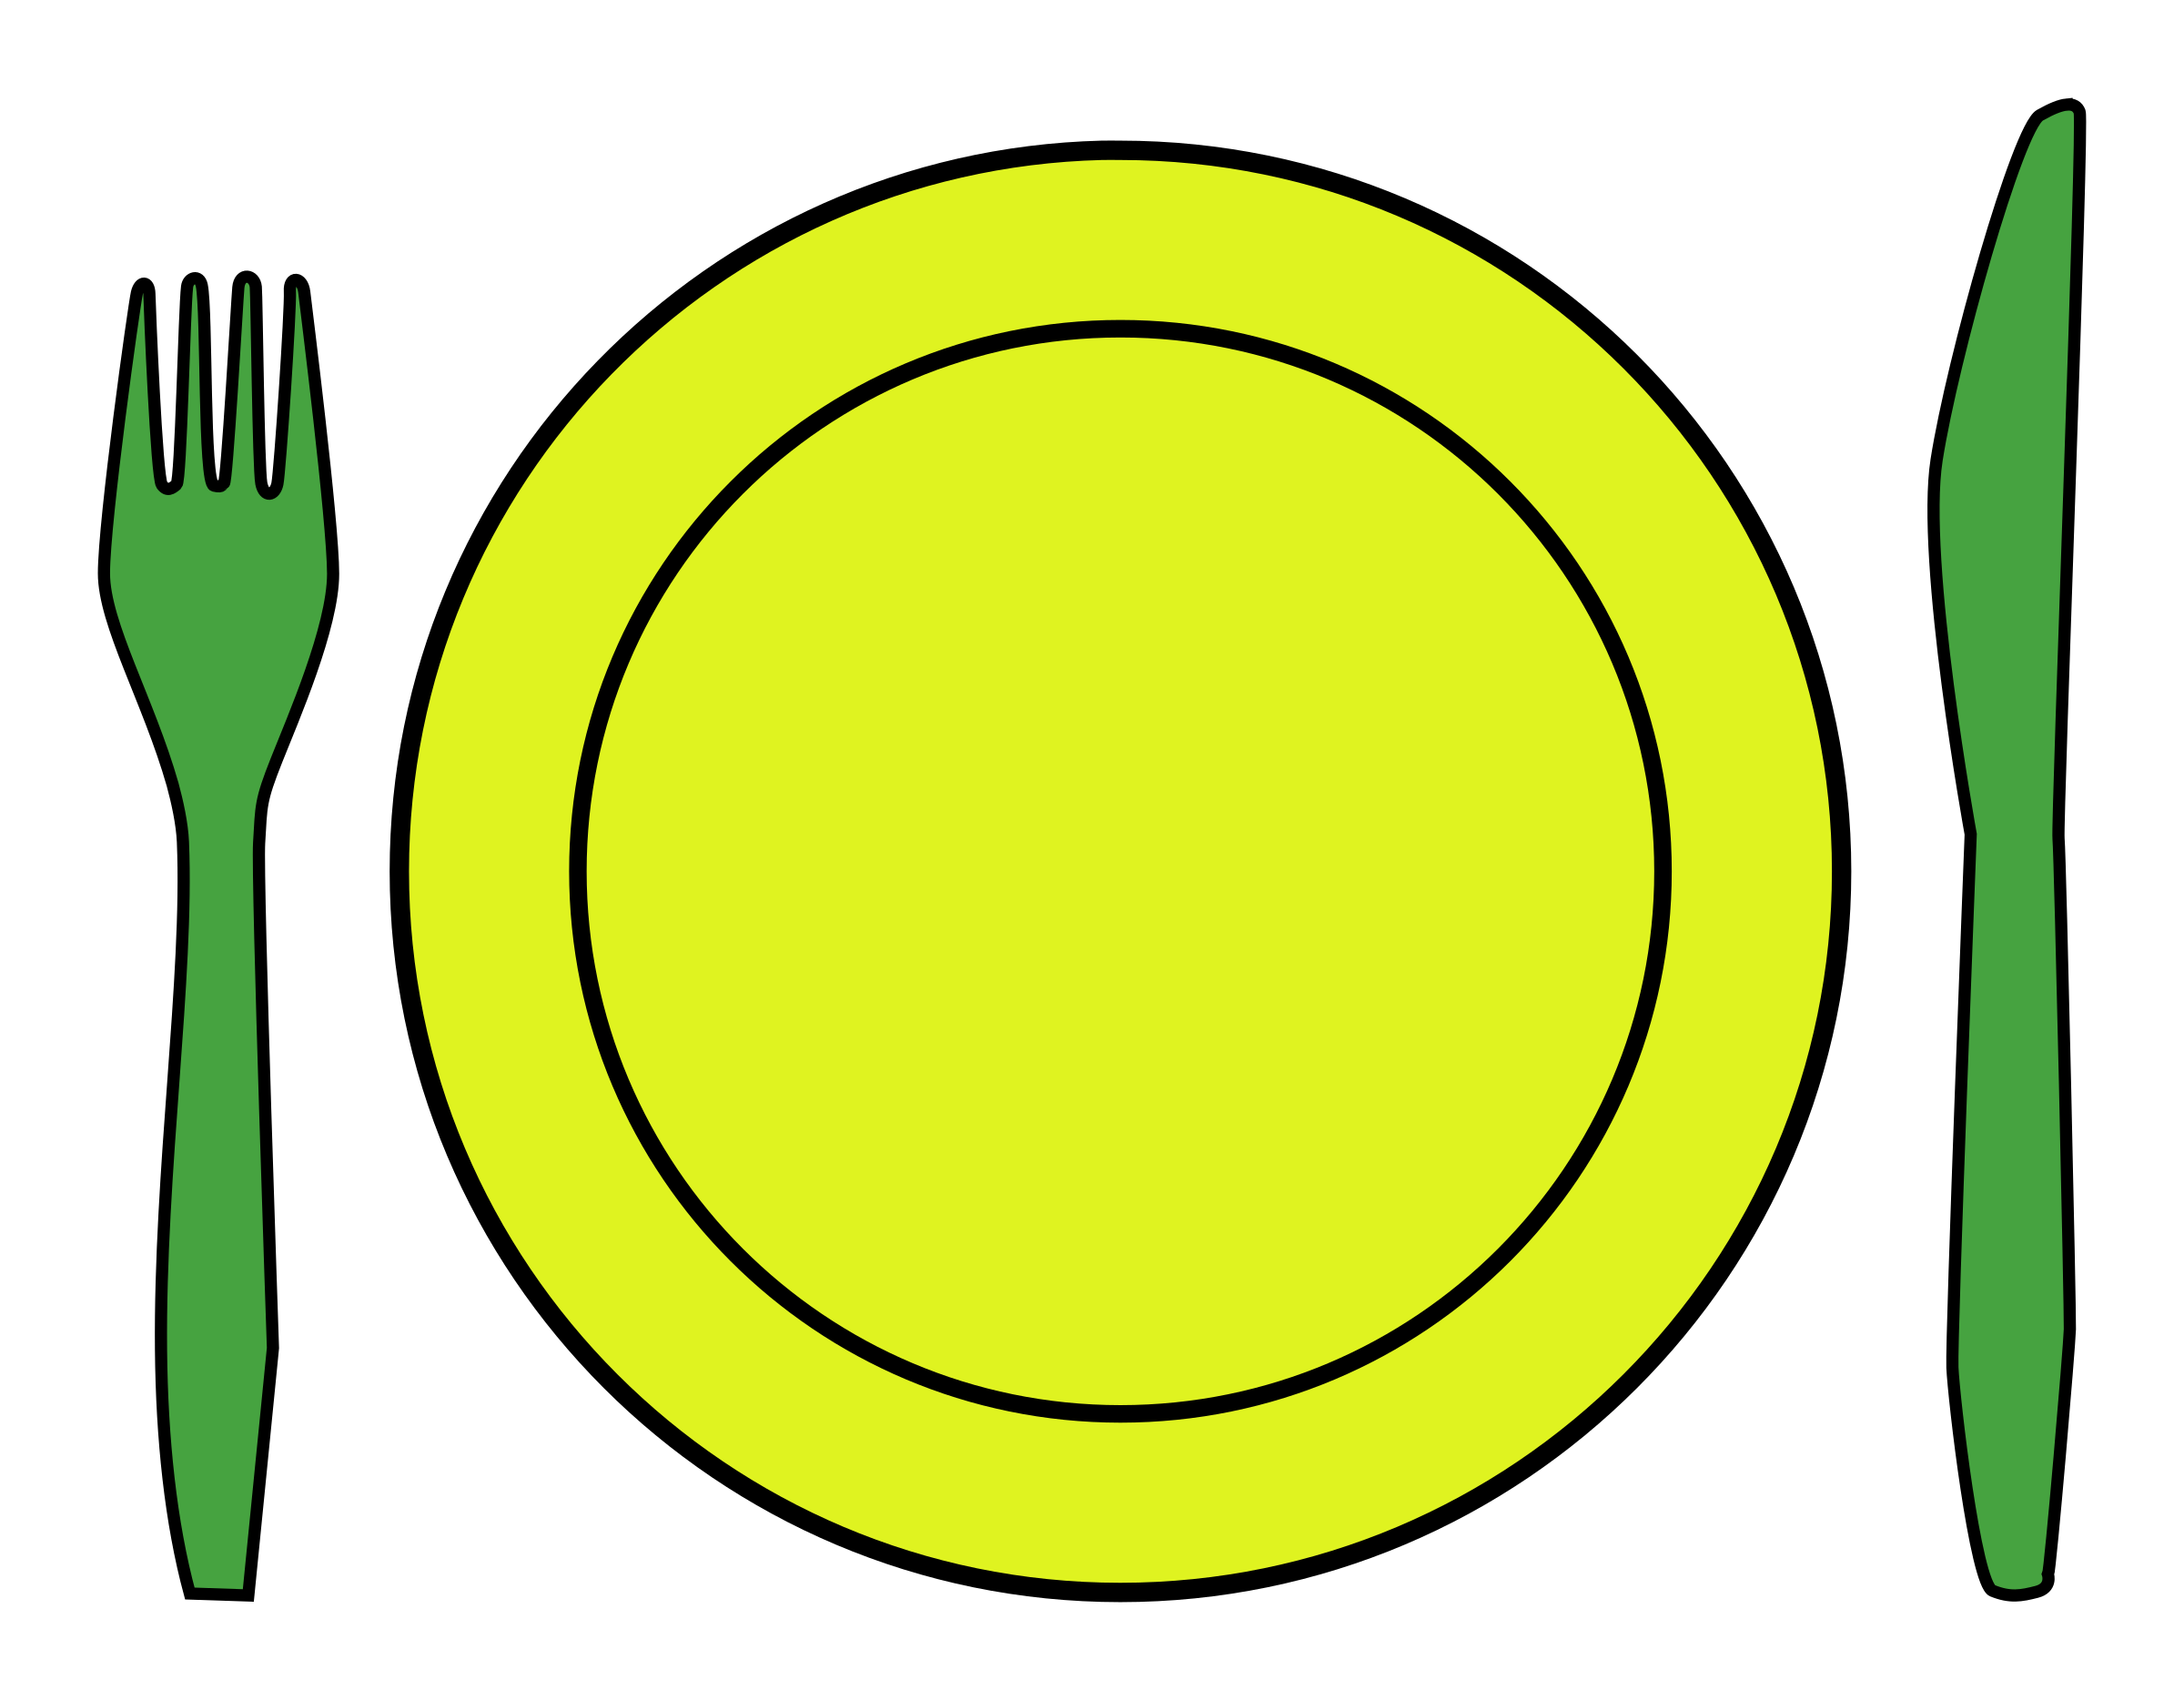 Clipart Dinner place setting : fork knife and plate from openclipart.org size 2400 x 1868 png 185kB